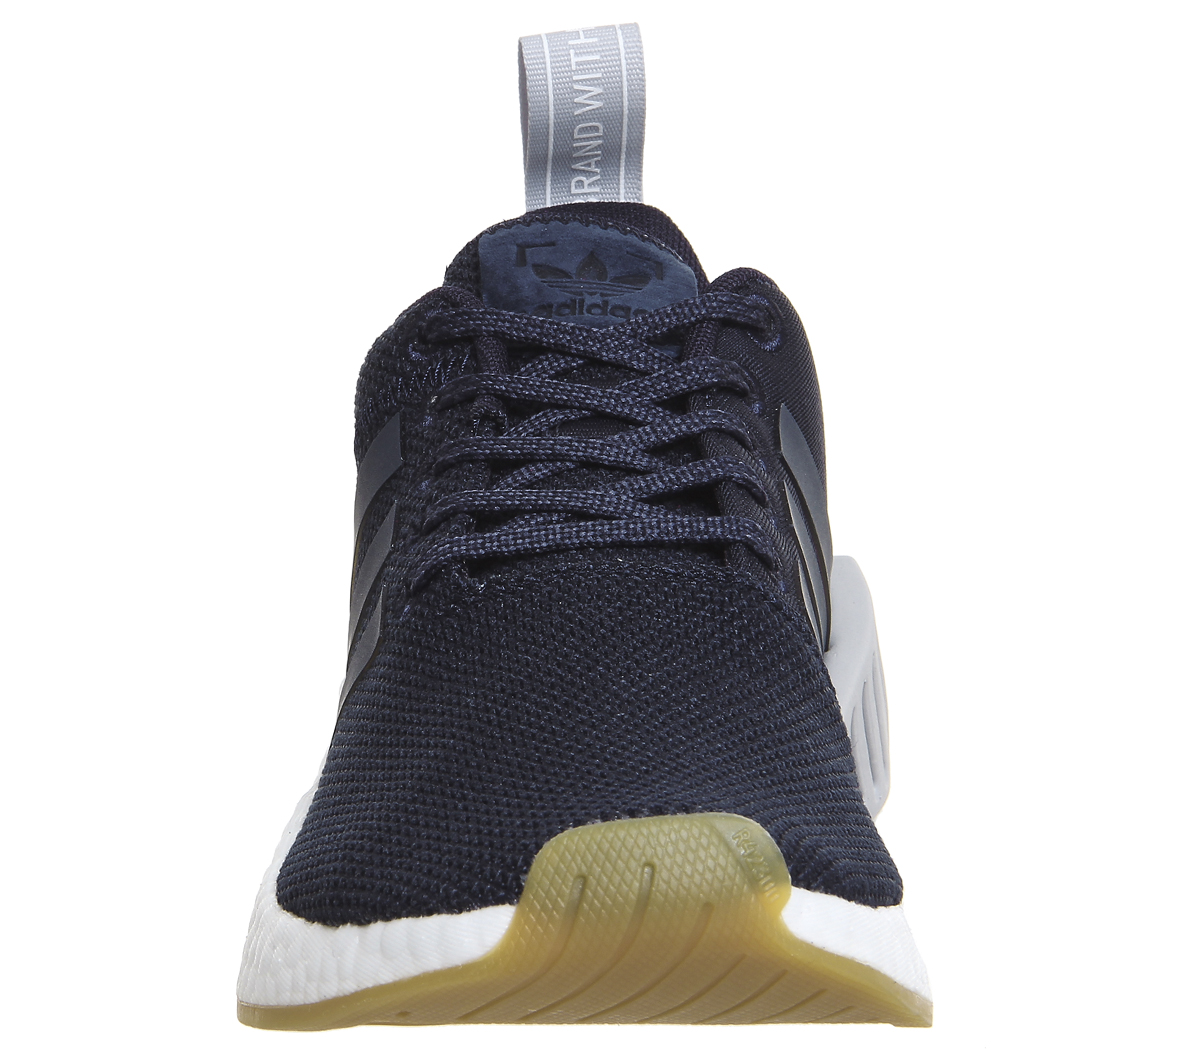 4c09354f1a140 Womens Adidas Nmd R2 Trainers LEGEND INK GREY TWO Trainers Shoes